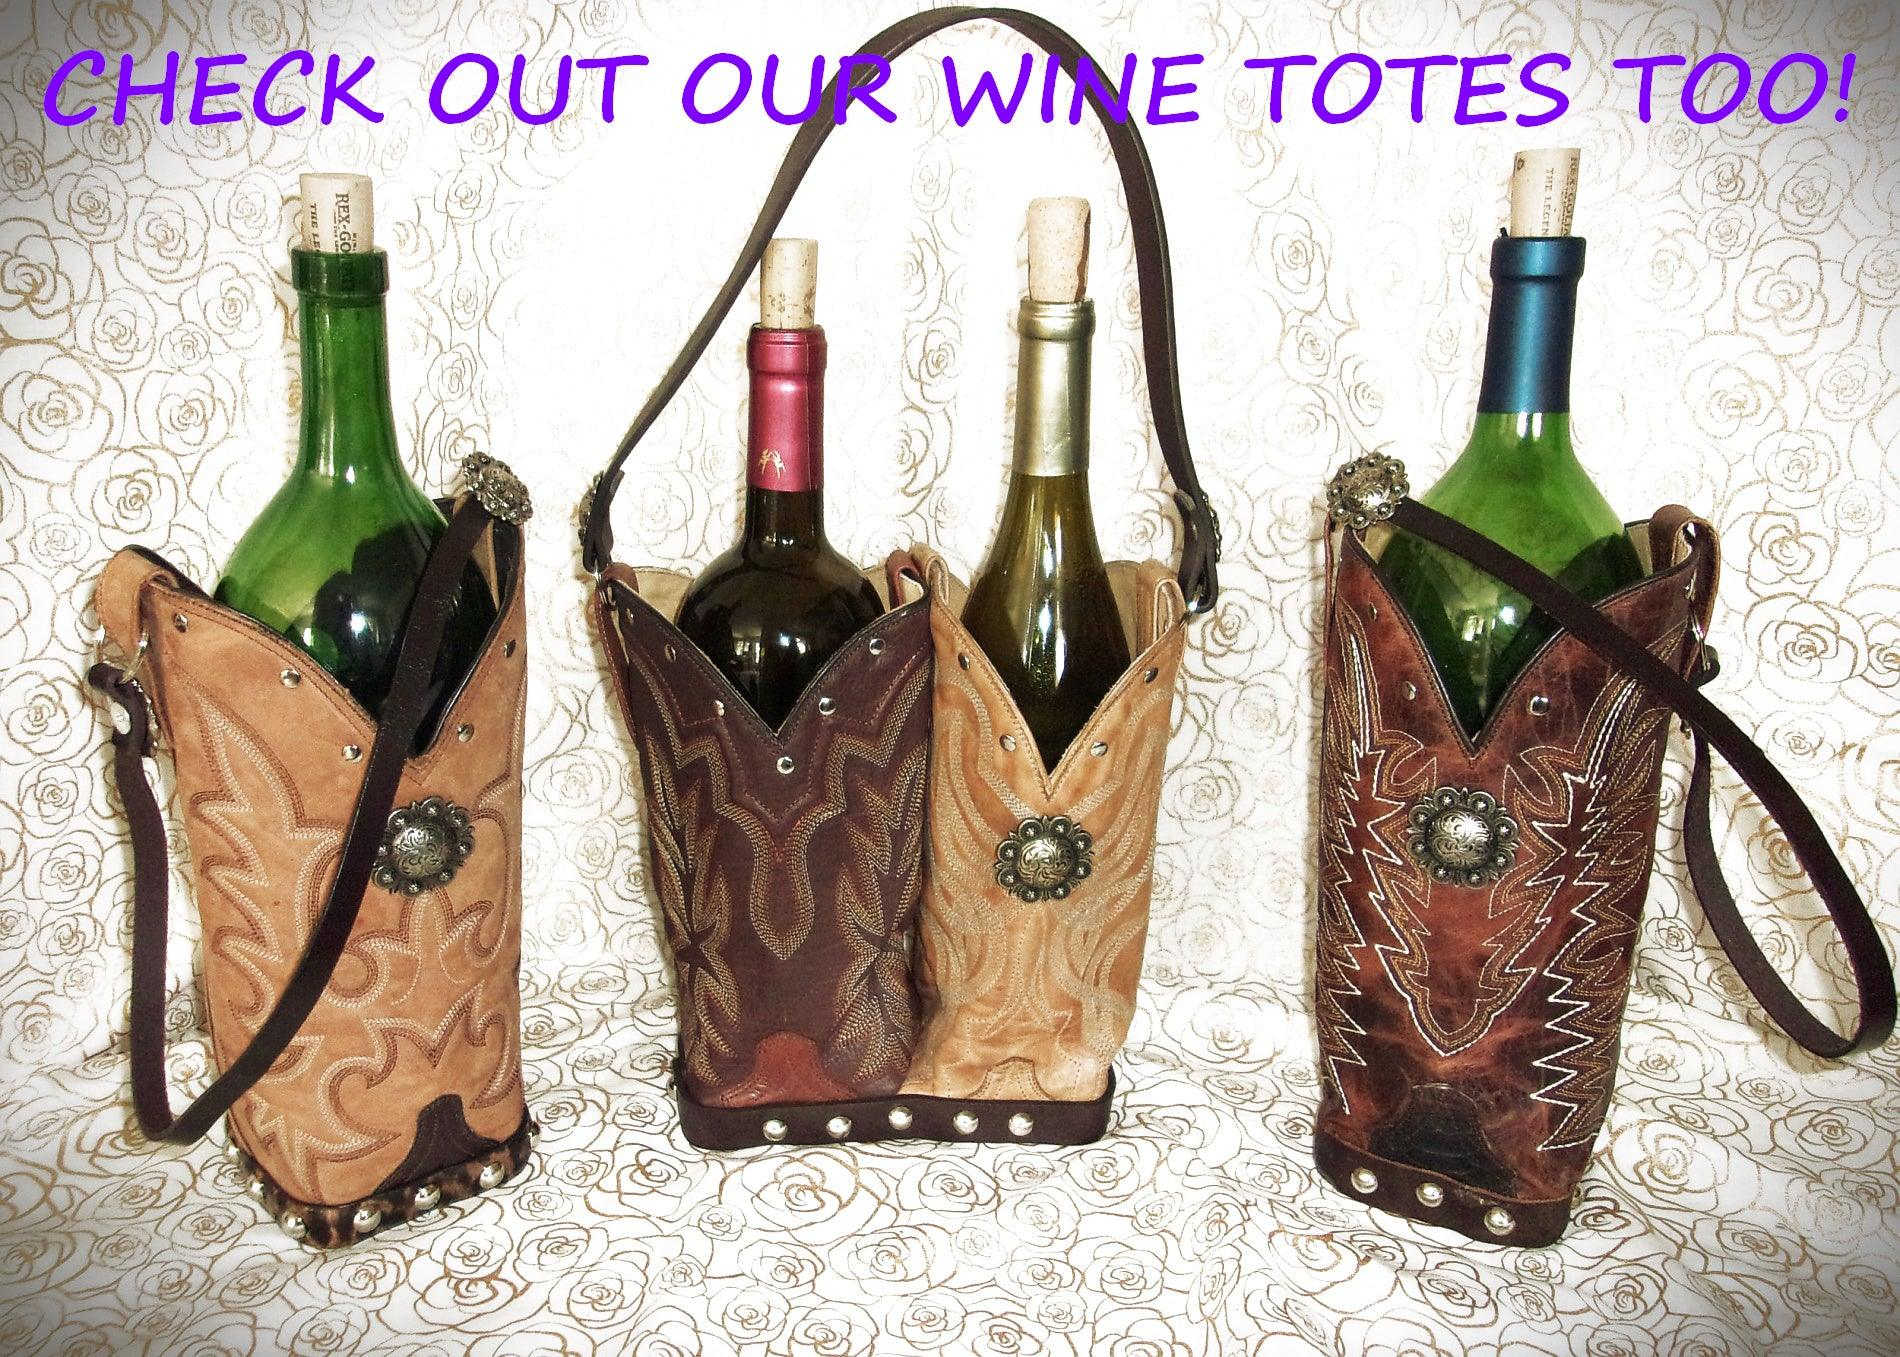 Leather Whiskey Tote CR62 - Cowboy Boot Purses by Chris Thompson for Distinctive Western Fashion